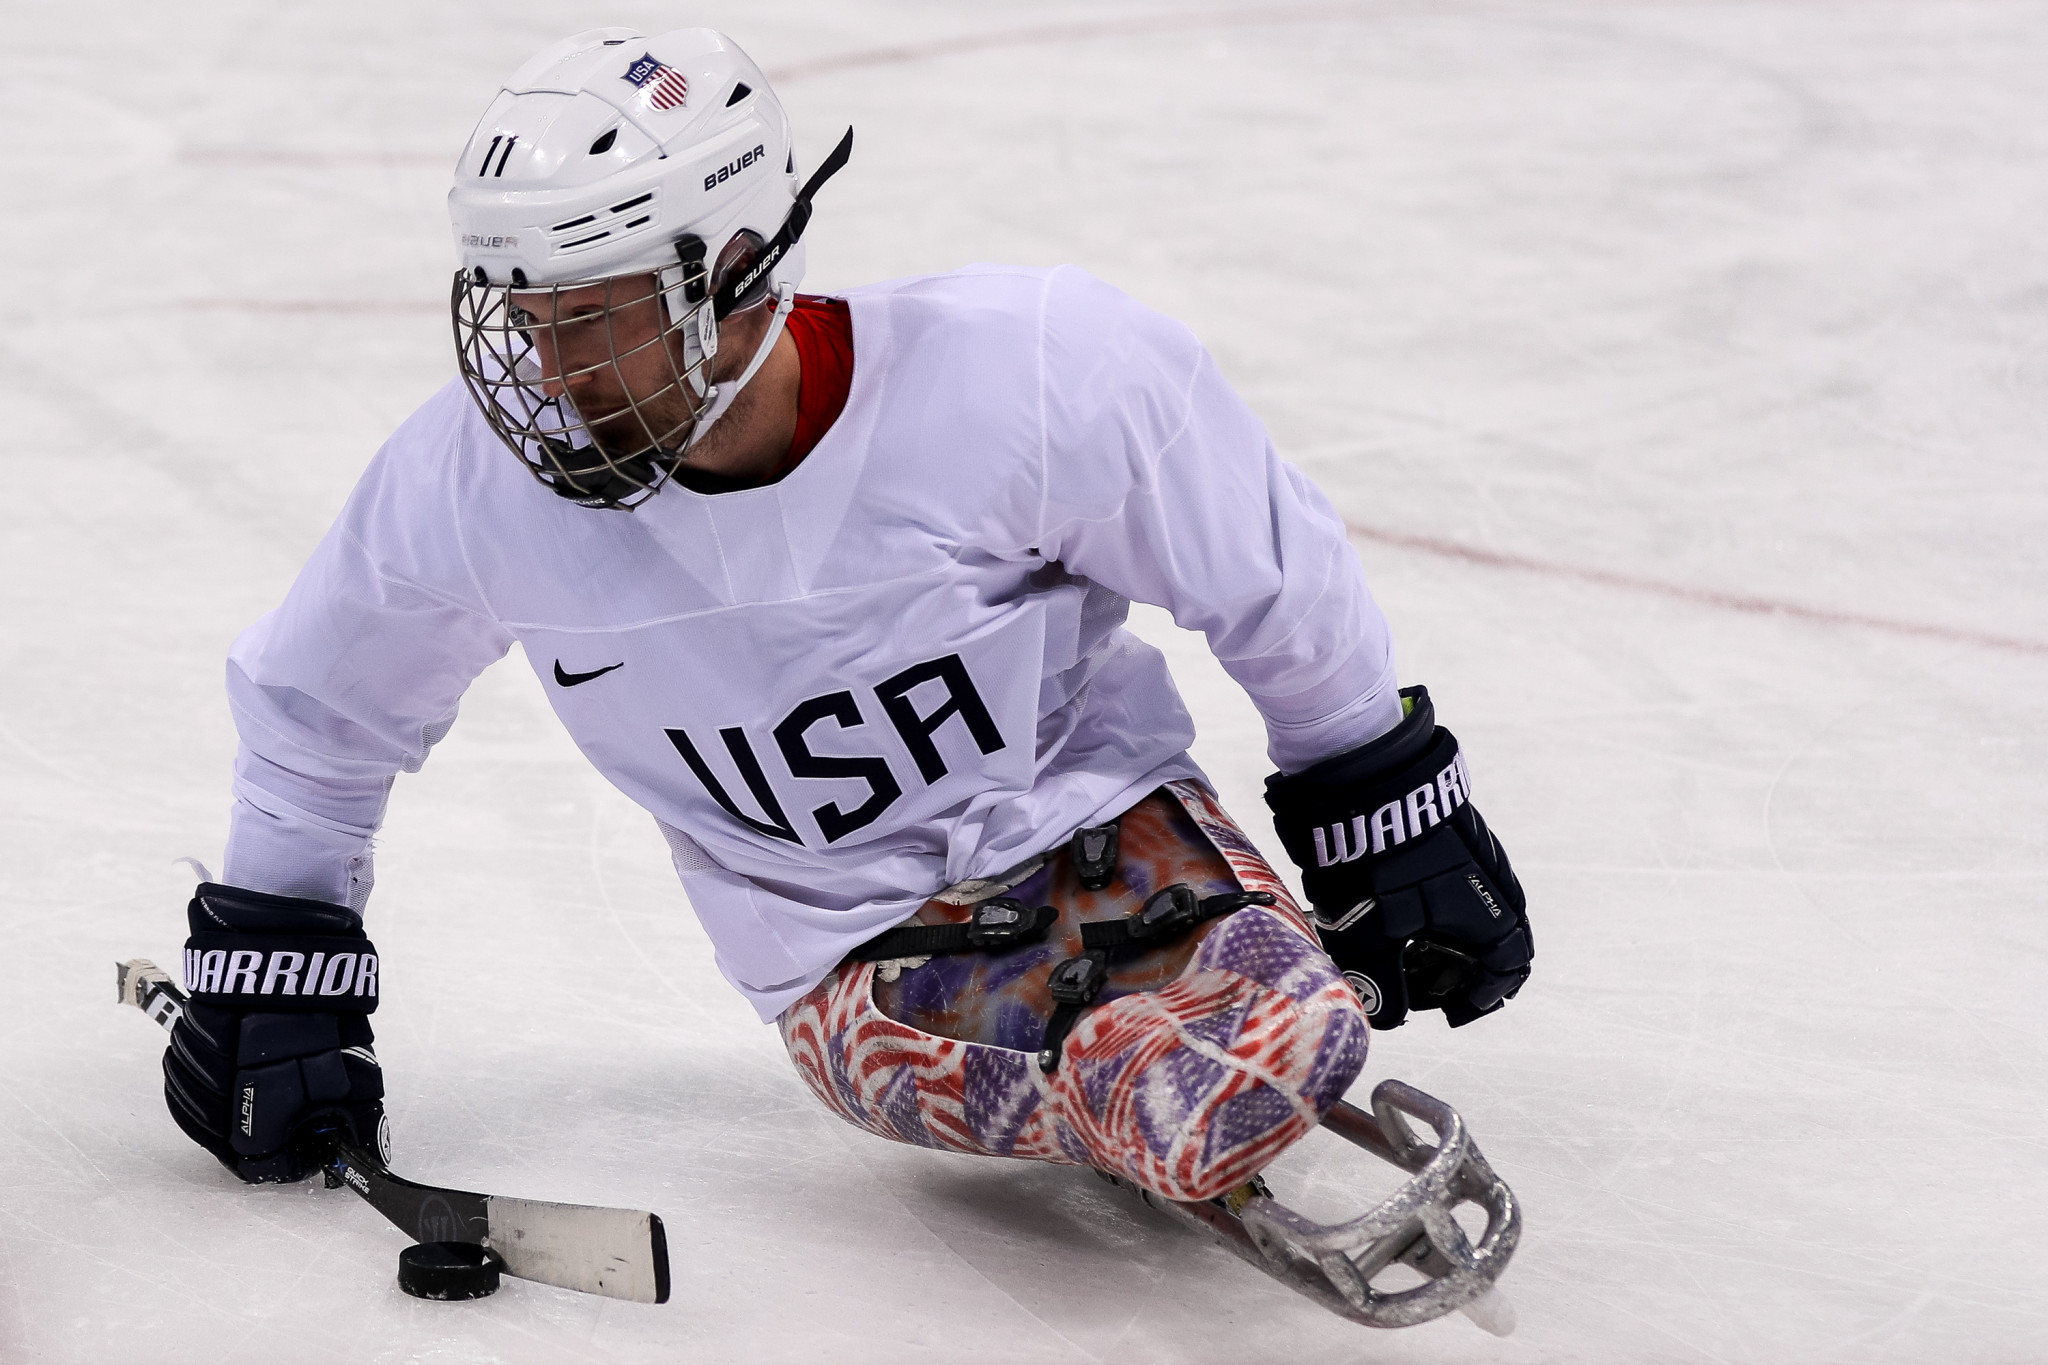 American ice hockey player to lose Paralympic gold medal after failed test at Pyeongchang 2018